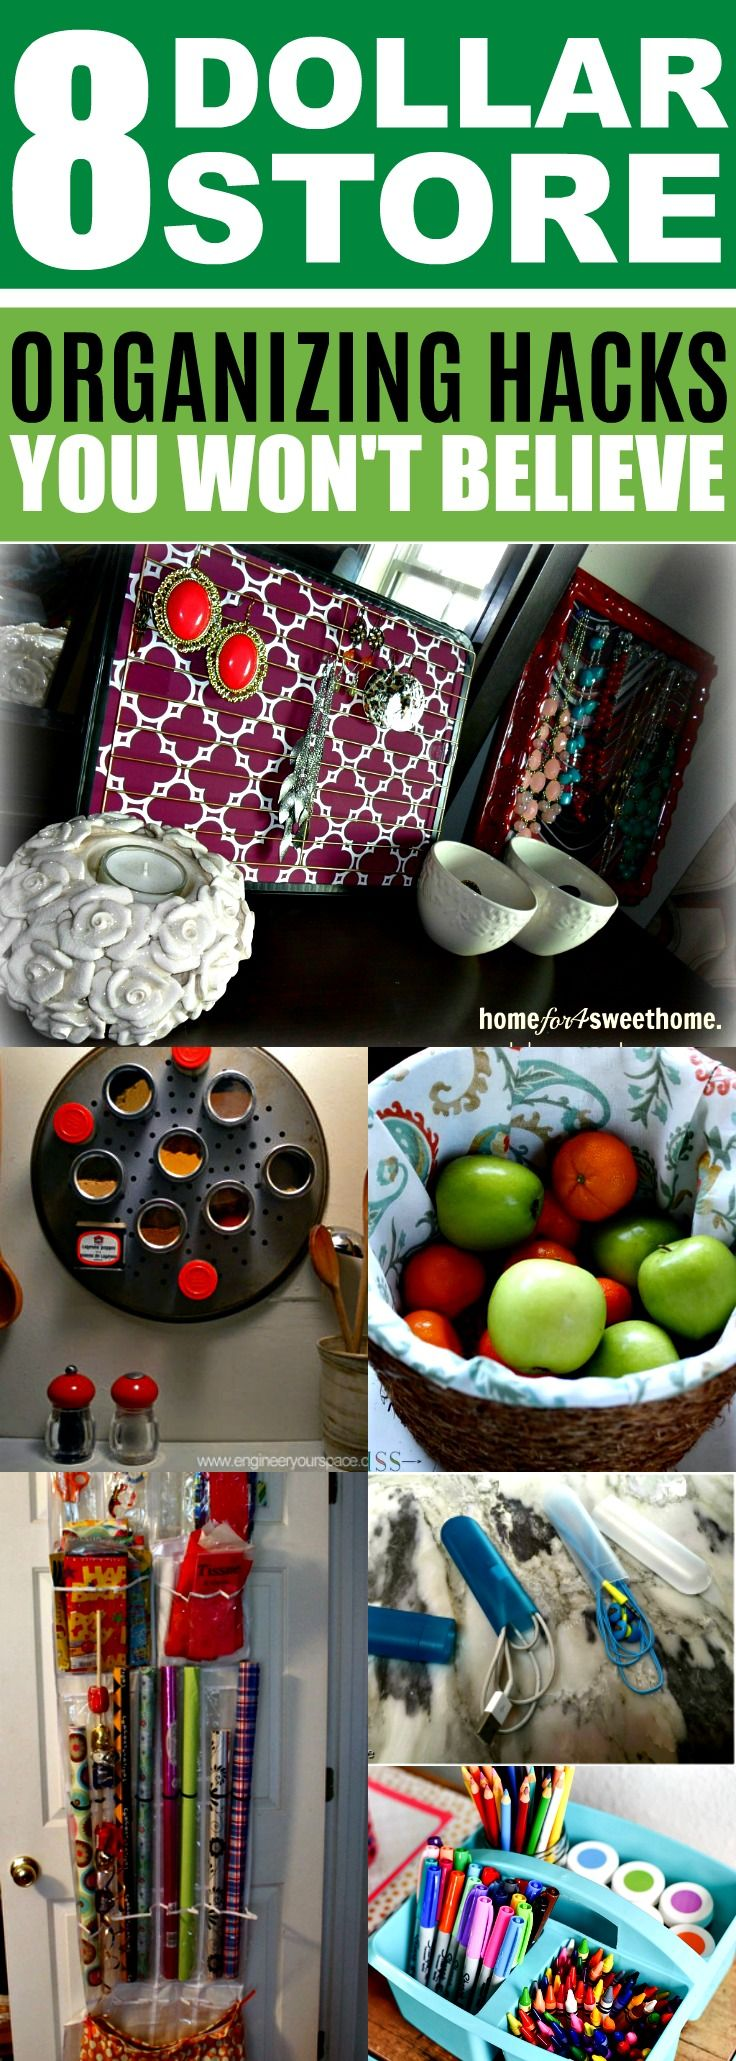 These Dollar Store organizing hacks for my home are SO CREATIVE! Can't wait to try these AMAZING Dollar Store organization ideas & tips to declutter! Now I can organize my home on a budget! Definitely pinning!